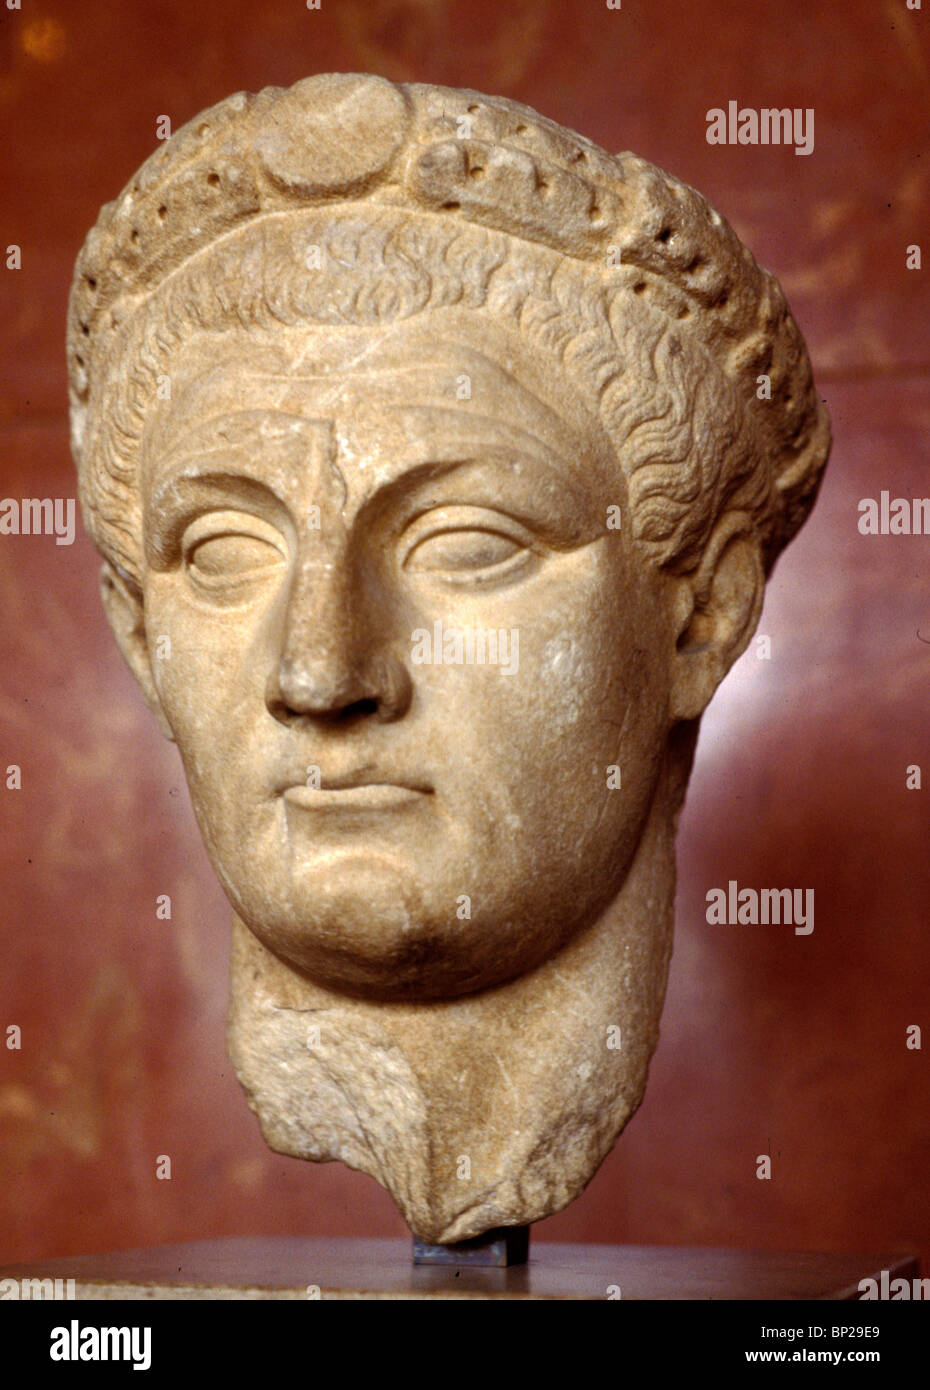 2997. MARBLE BUST OF C A L I G U L A , EMPEROR OF ROME FROM 37 TO 41 AD - Stock Image